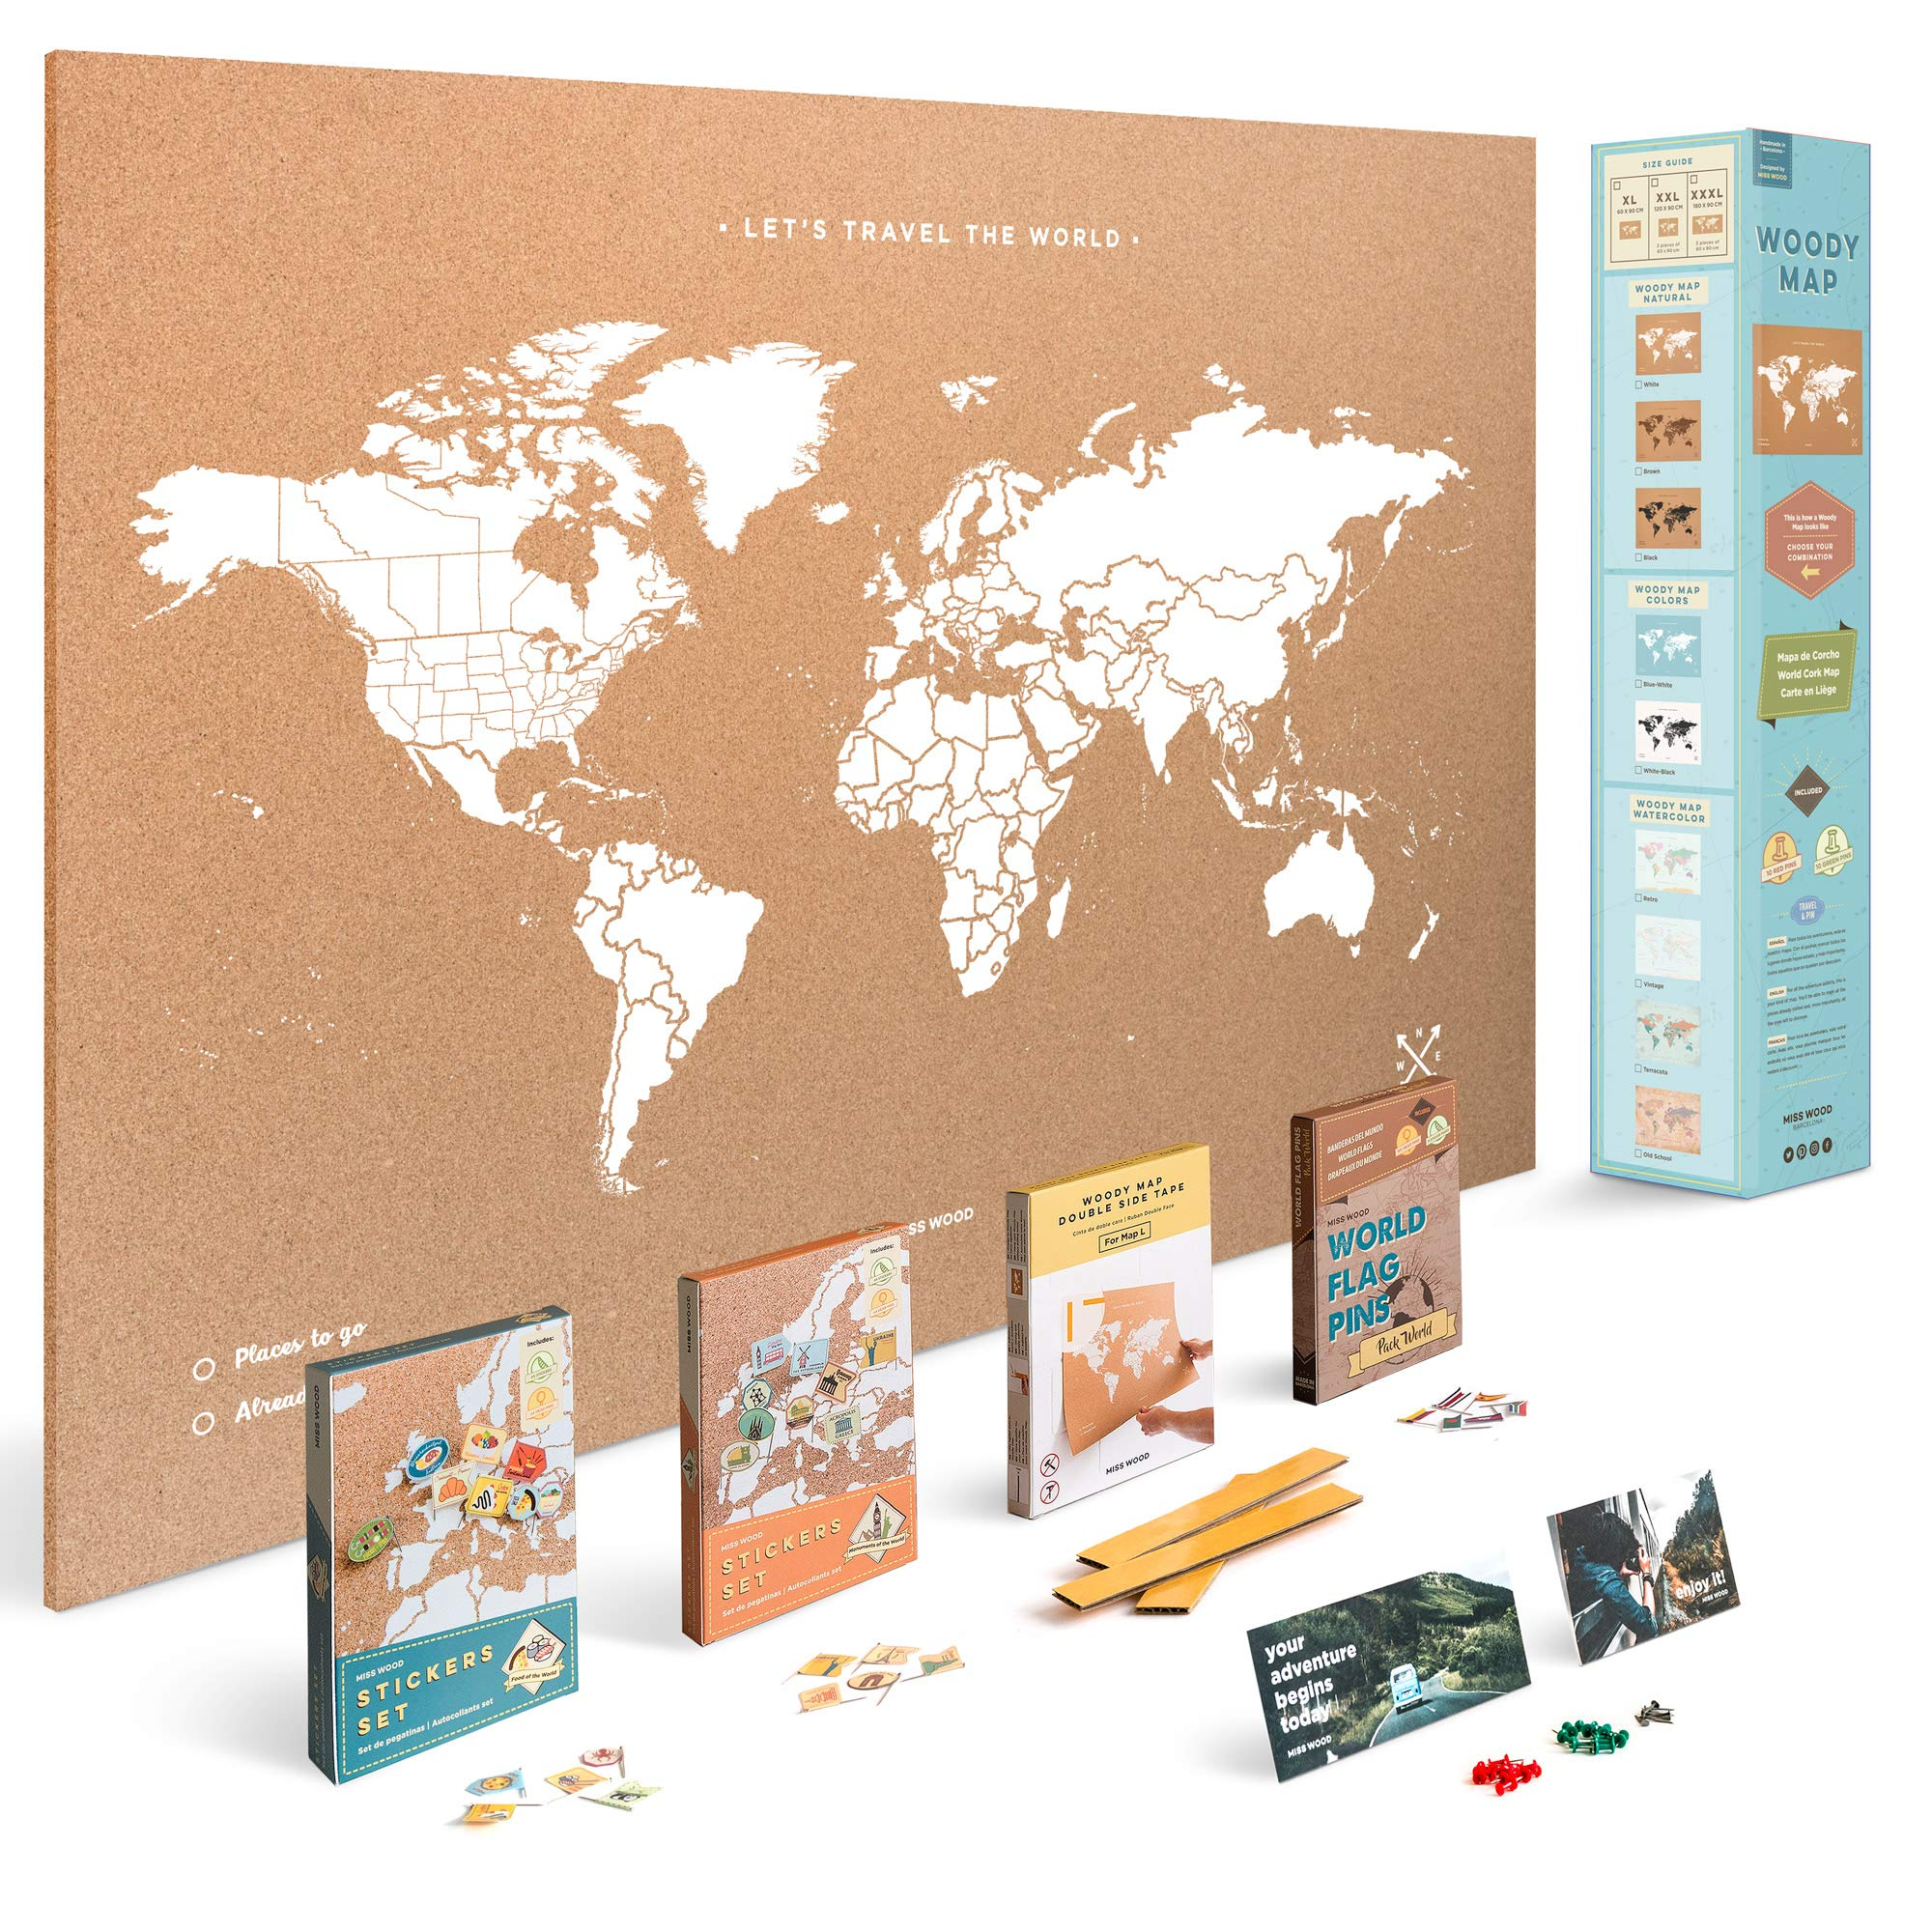 Push Pin Travel Map Kit Includes: Cork World Travel Map, World Flags, Monument and Food Stickers, for Travelers (White, XL (23.6 x 35.4 inches))